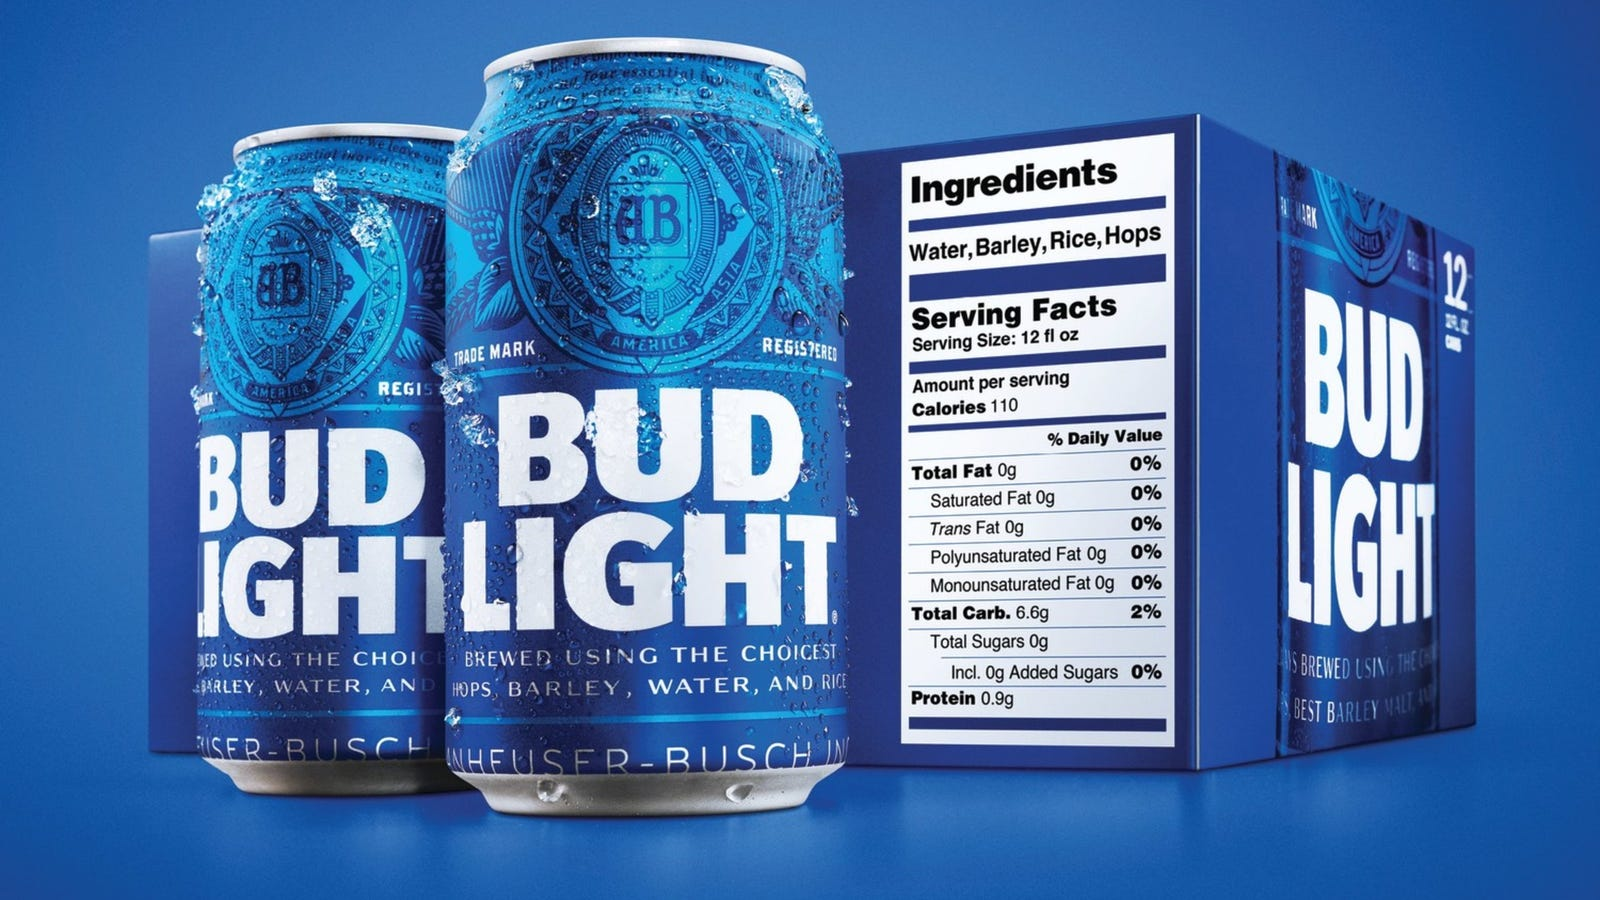 Best Tasting Light Beer 2020 Bud Light becomes first American beer labeled with nutritional facts